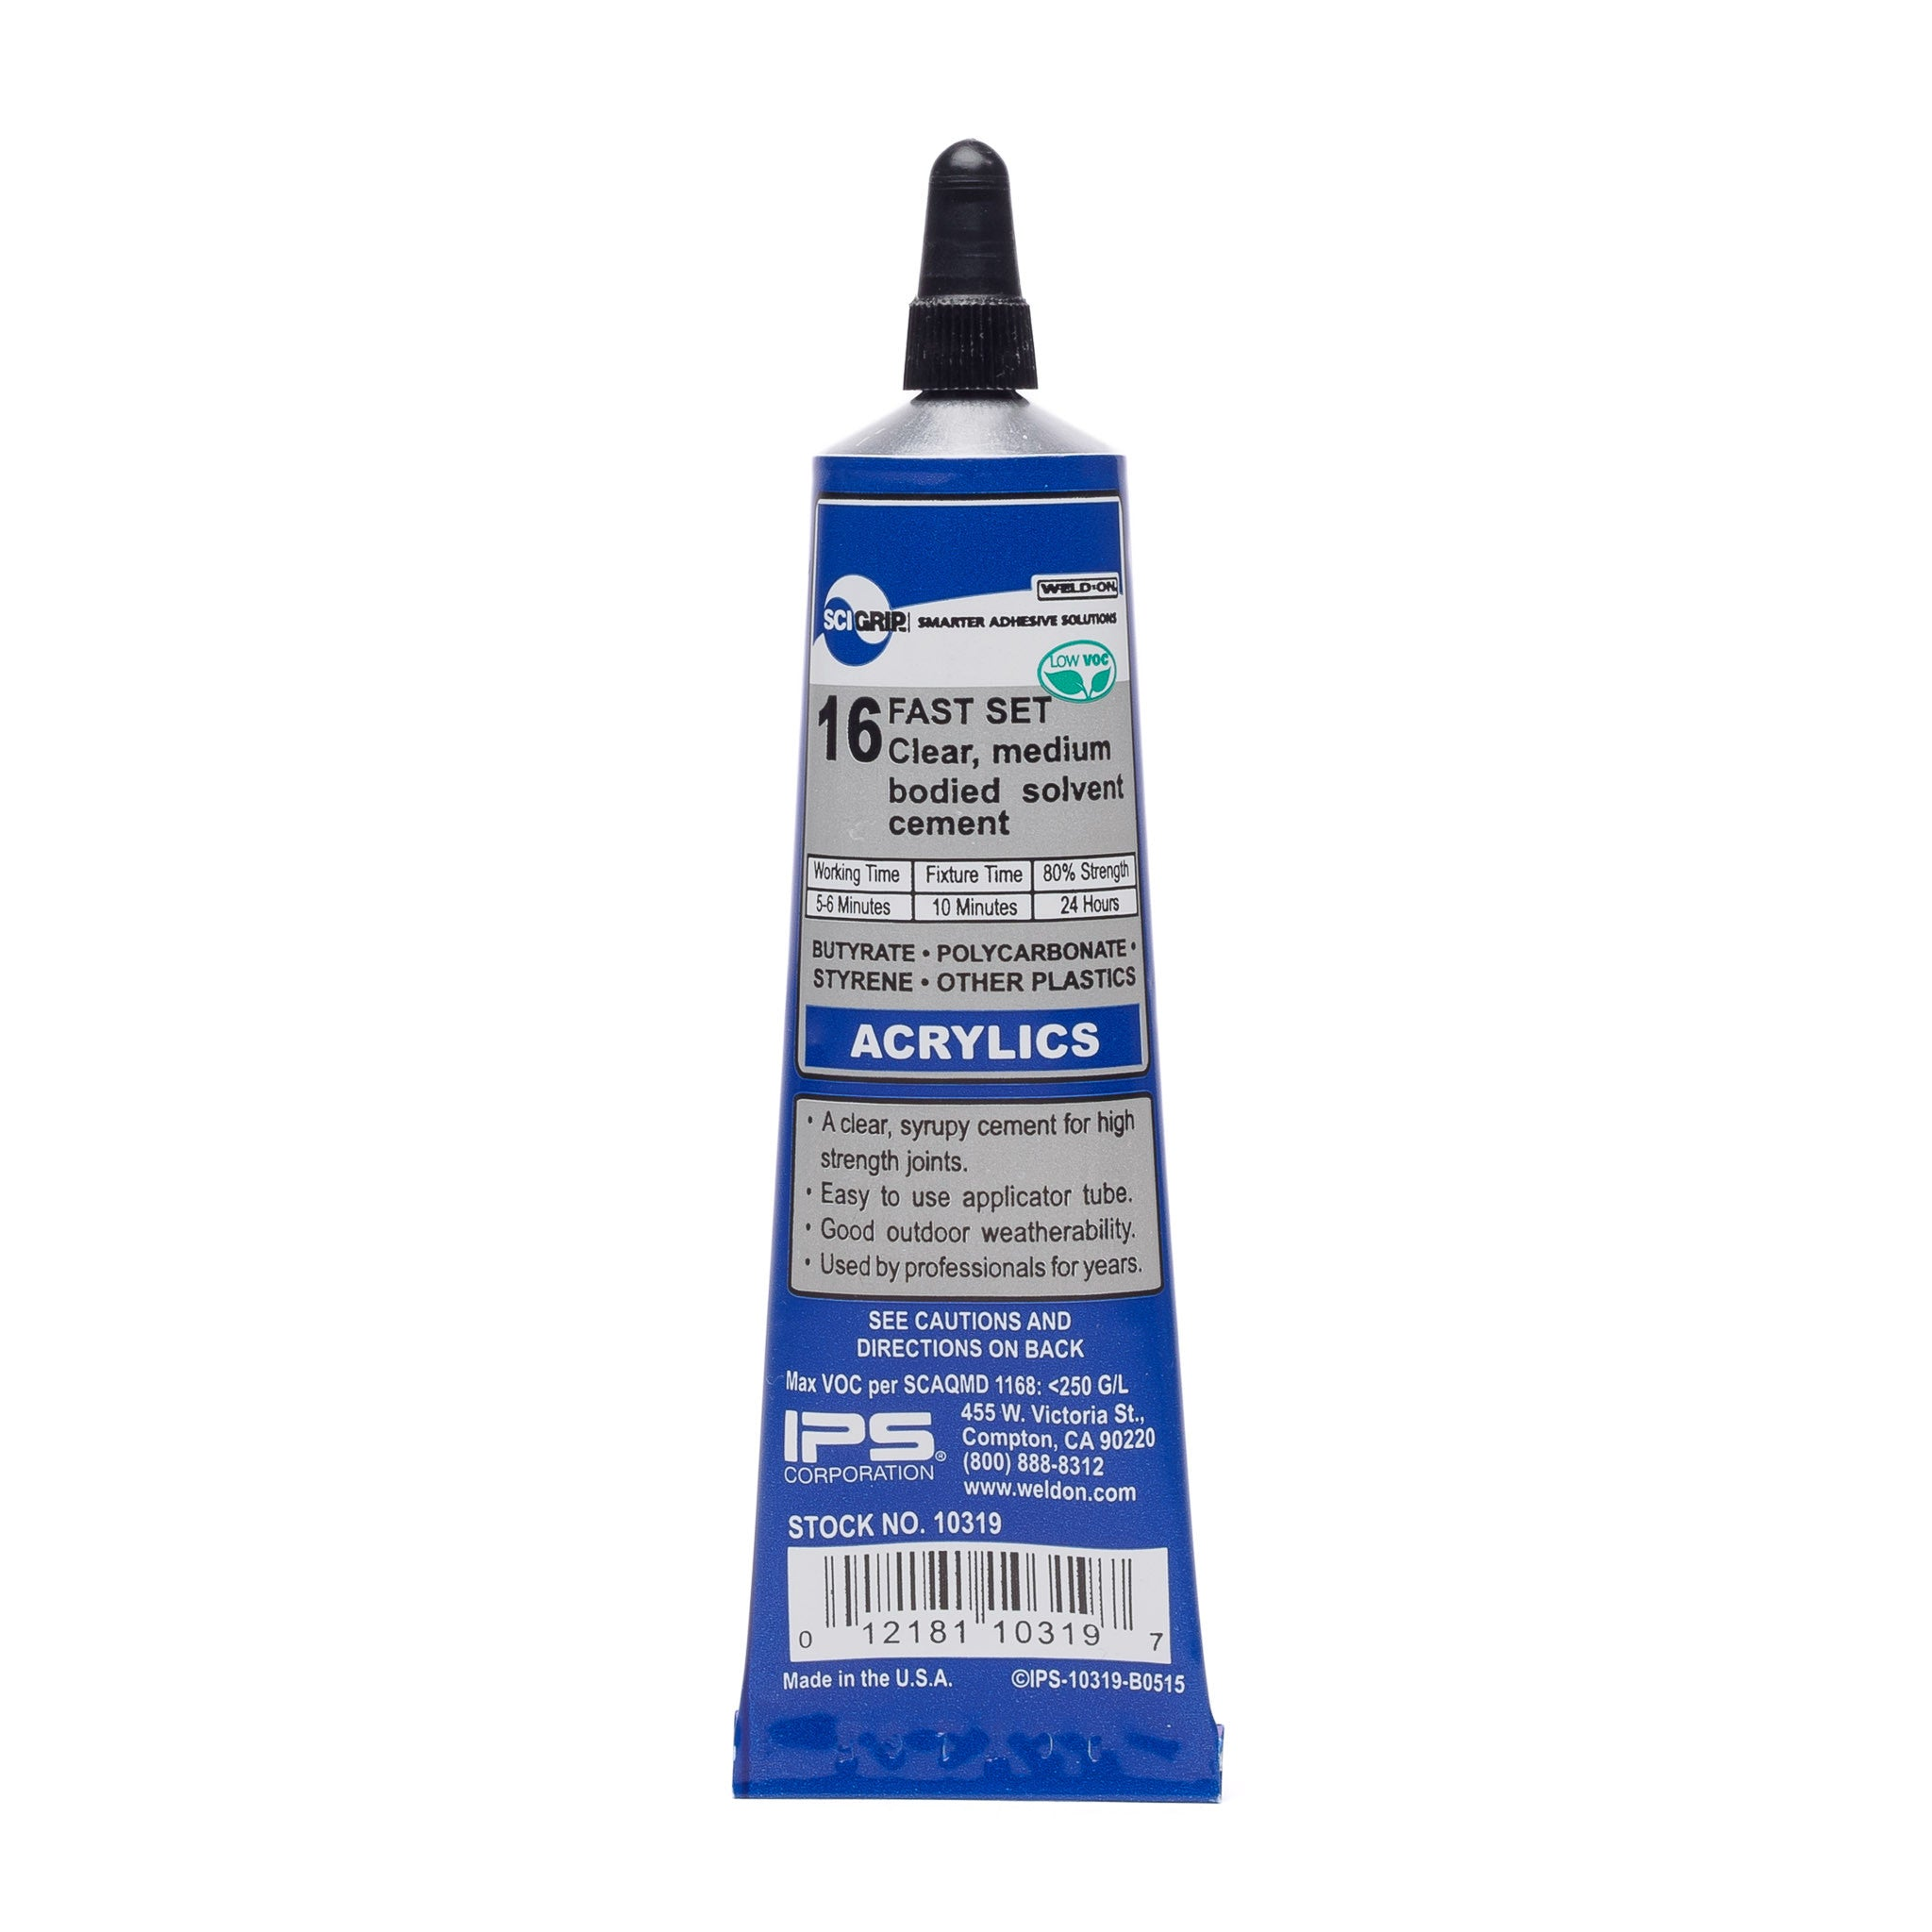 IPS Sci-Grip 16 Acrylic Solvent Cement